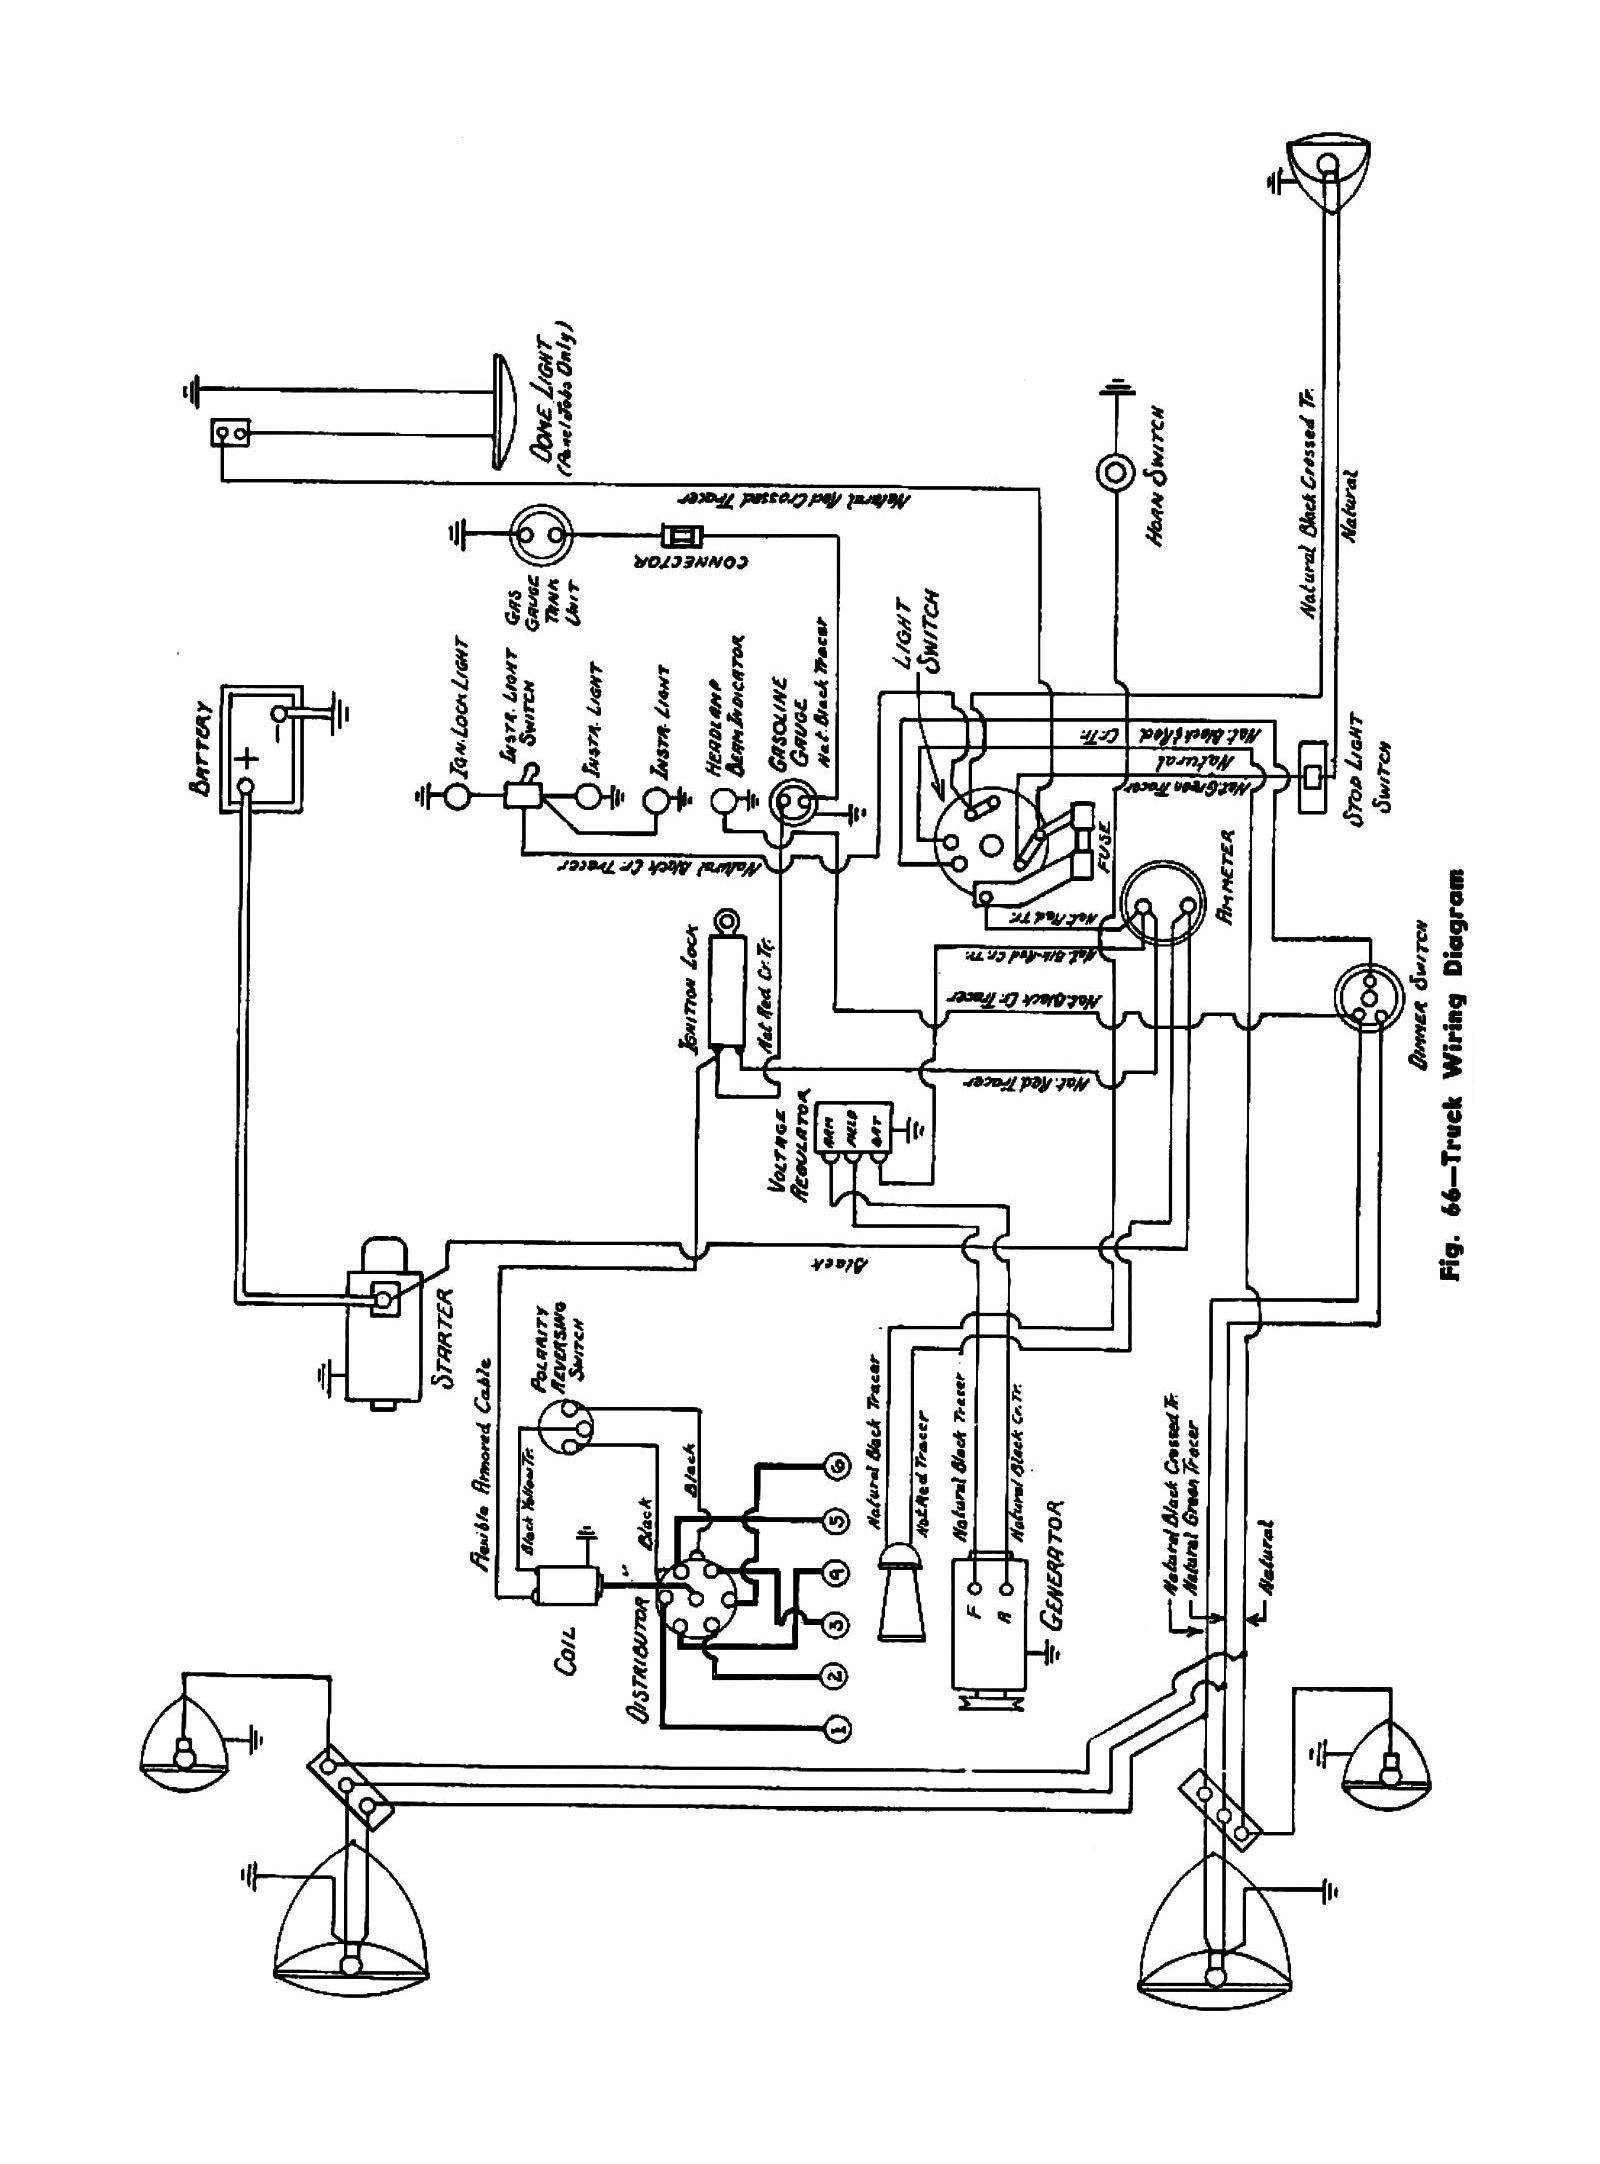 [DIAGRAM_38YU]  68F 66 Gm Wiring Harness Diagram | Wiring Library | Delco Radio Wiring Diagram 1964 |  | Wiring Library